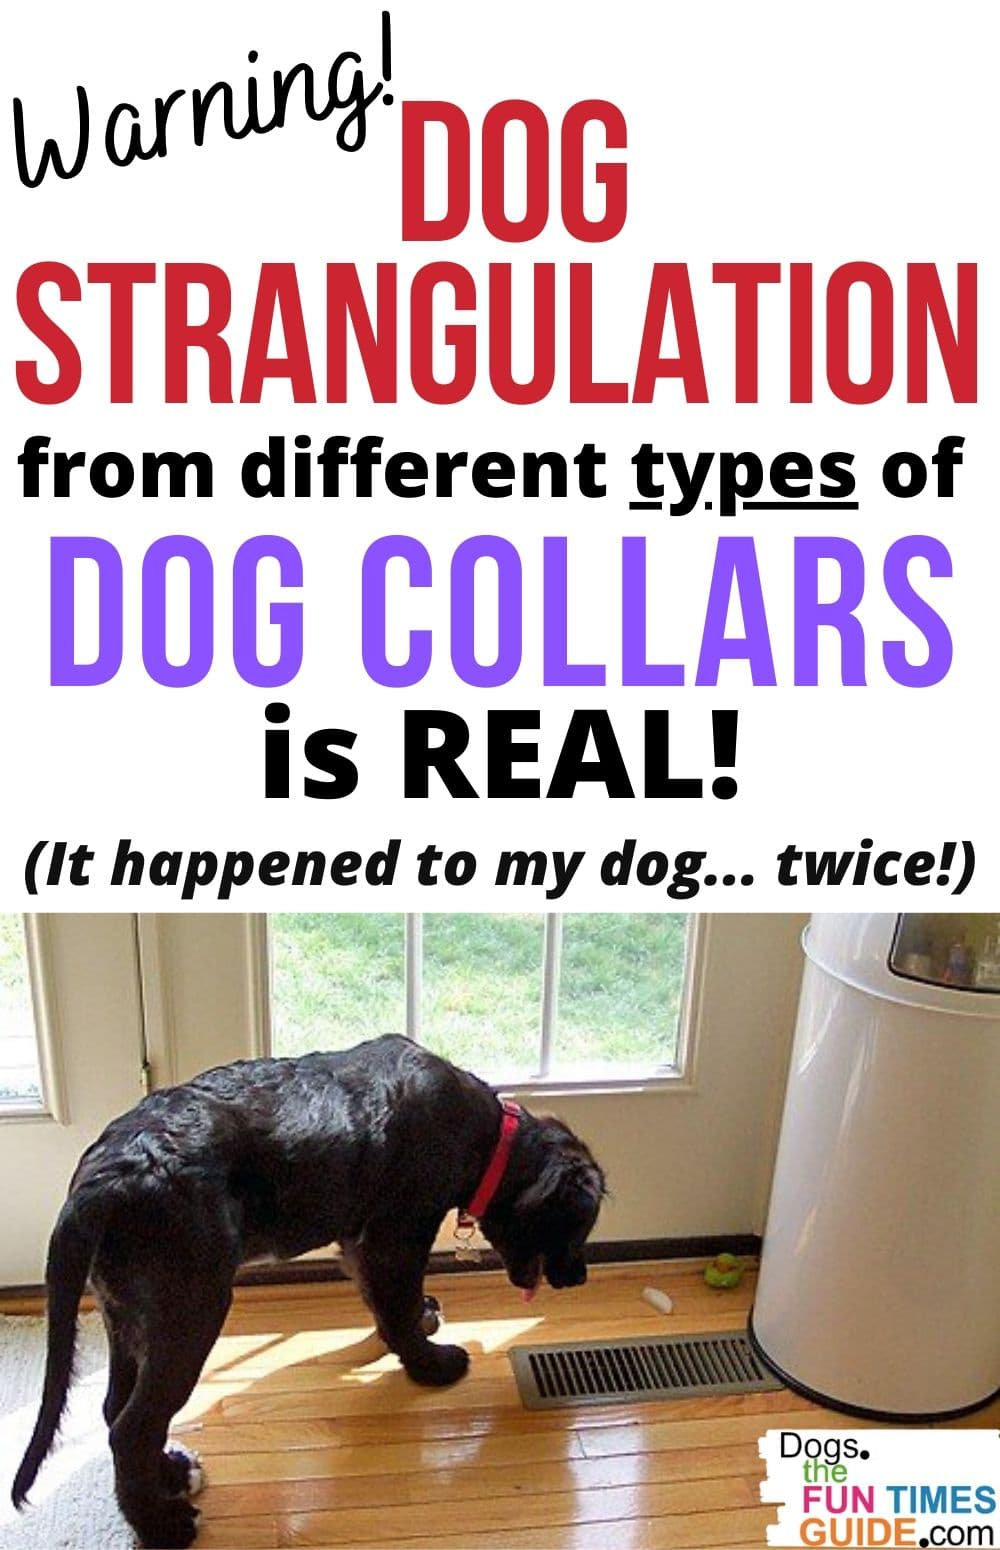 WARNING: 2 Different Types Of Dog Collars Almost Strangled My Dog! Here's Which Dog Collars Are Safe